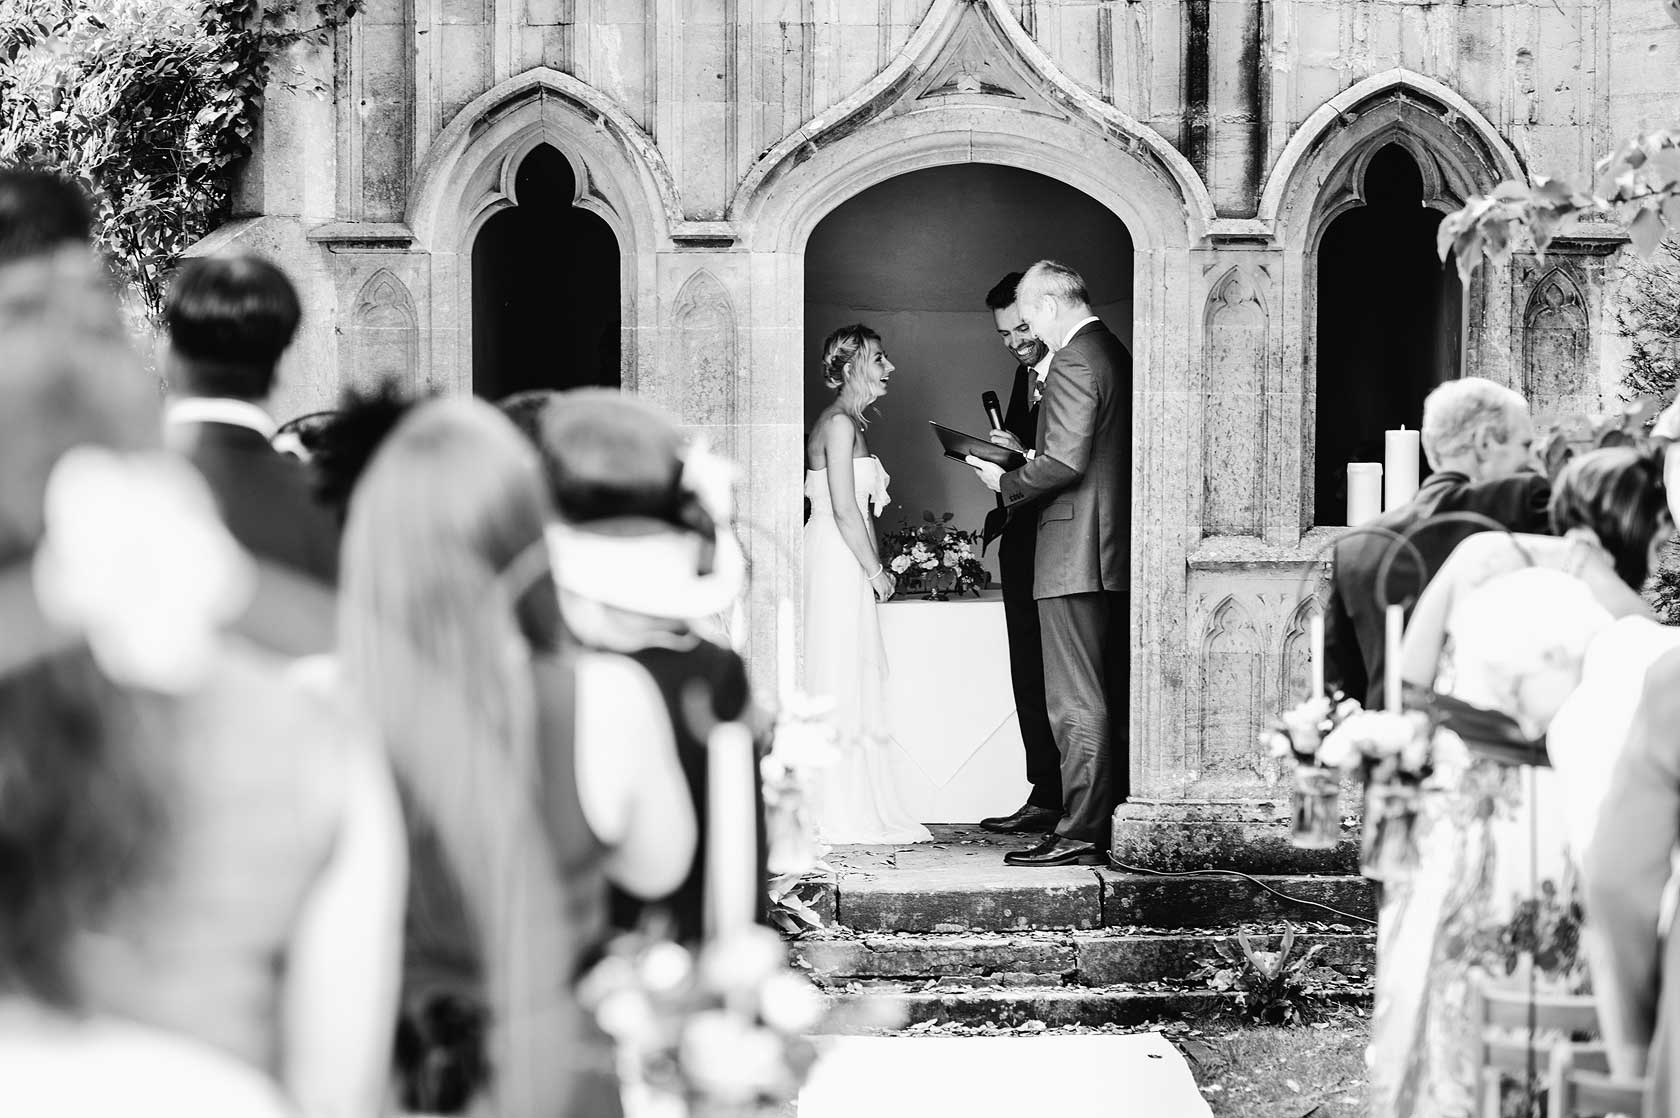 Reportage Wedding Photography at a Cotswolds Manor House